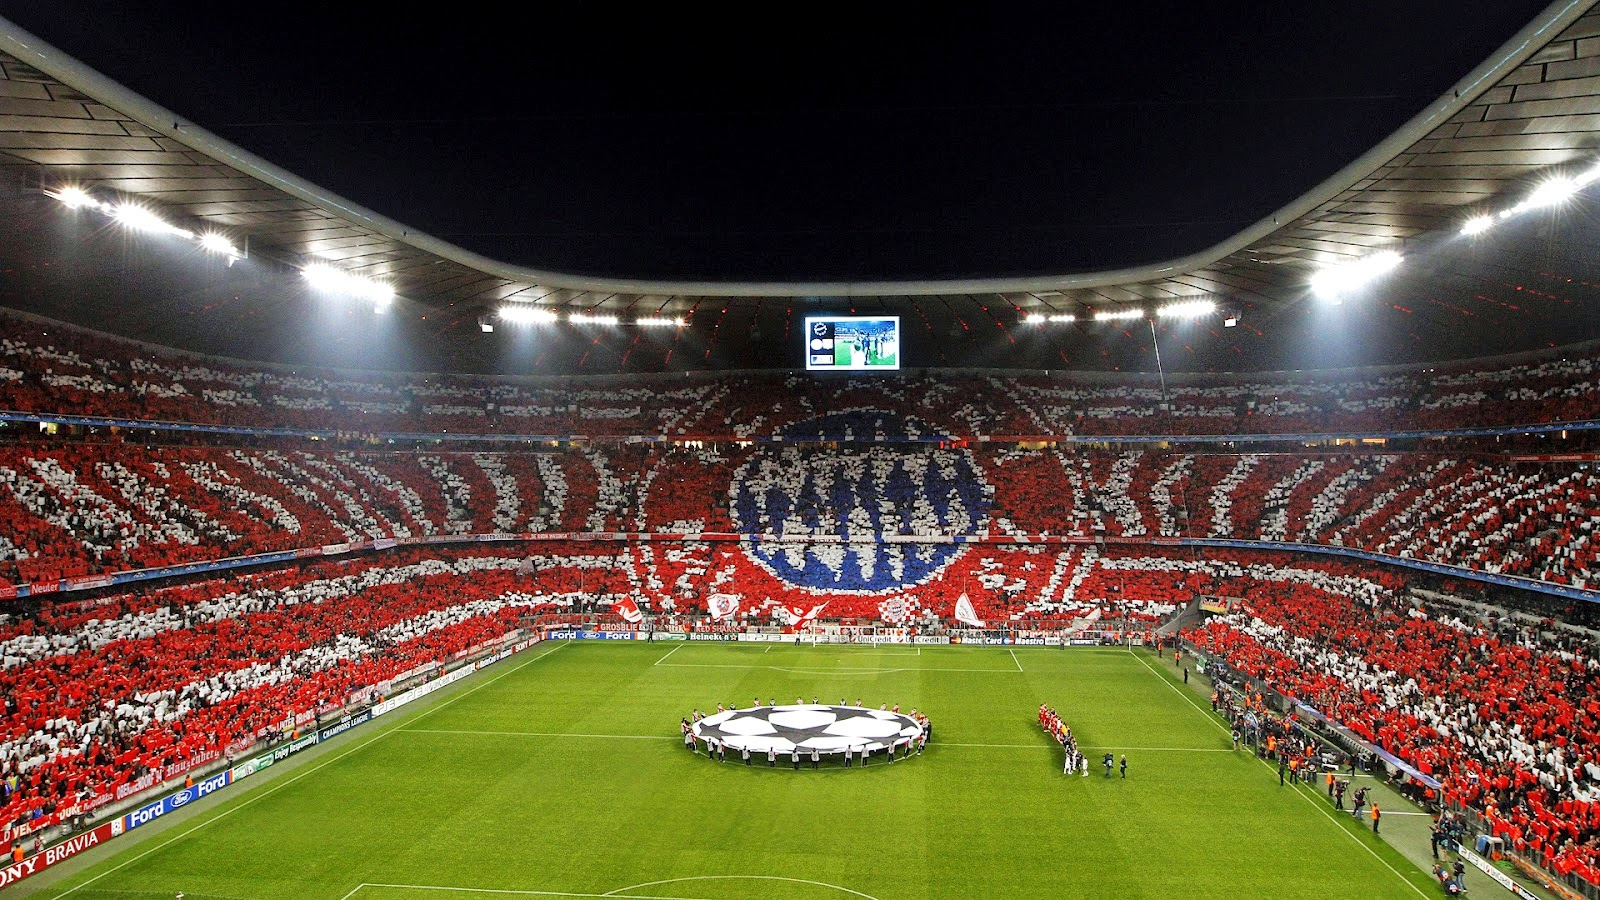 Bayern eyes top spot in Champions League Group, hosts Olympiakos at Home